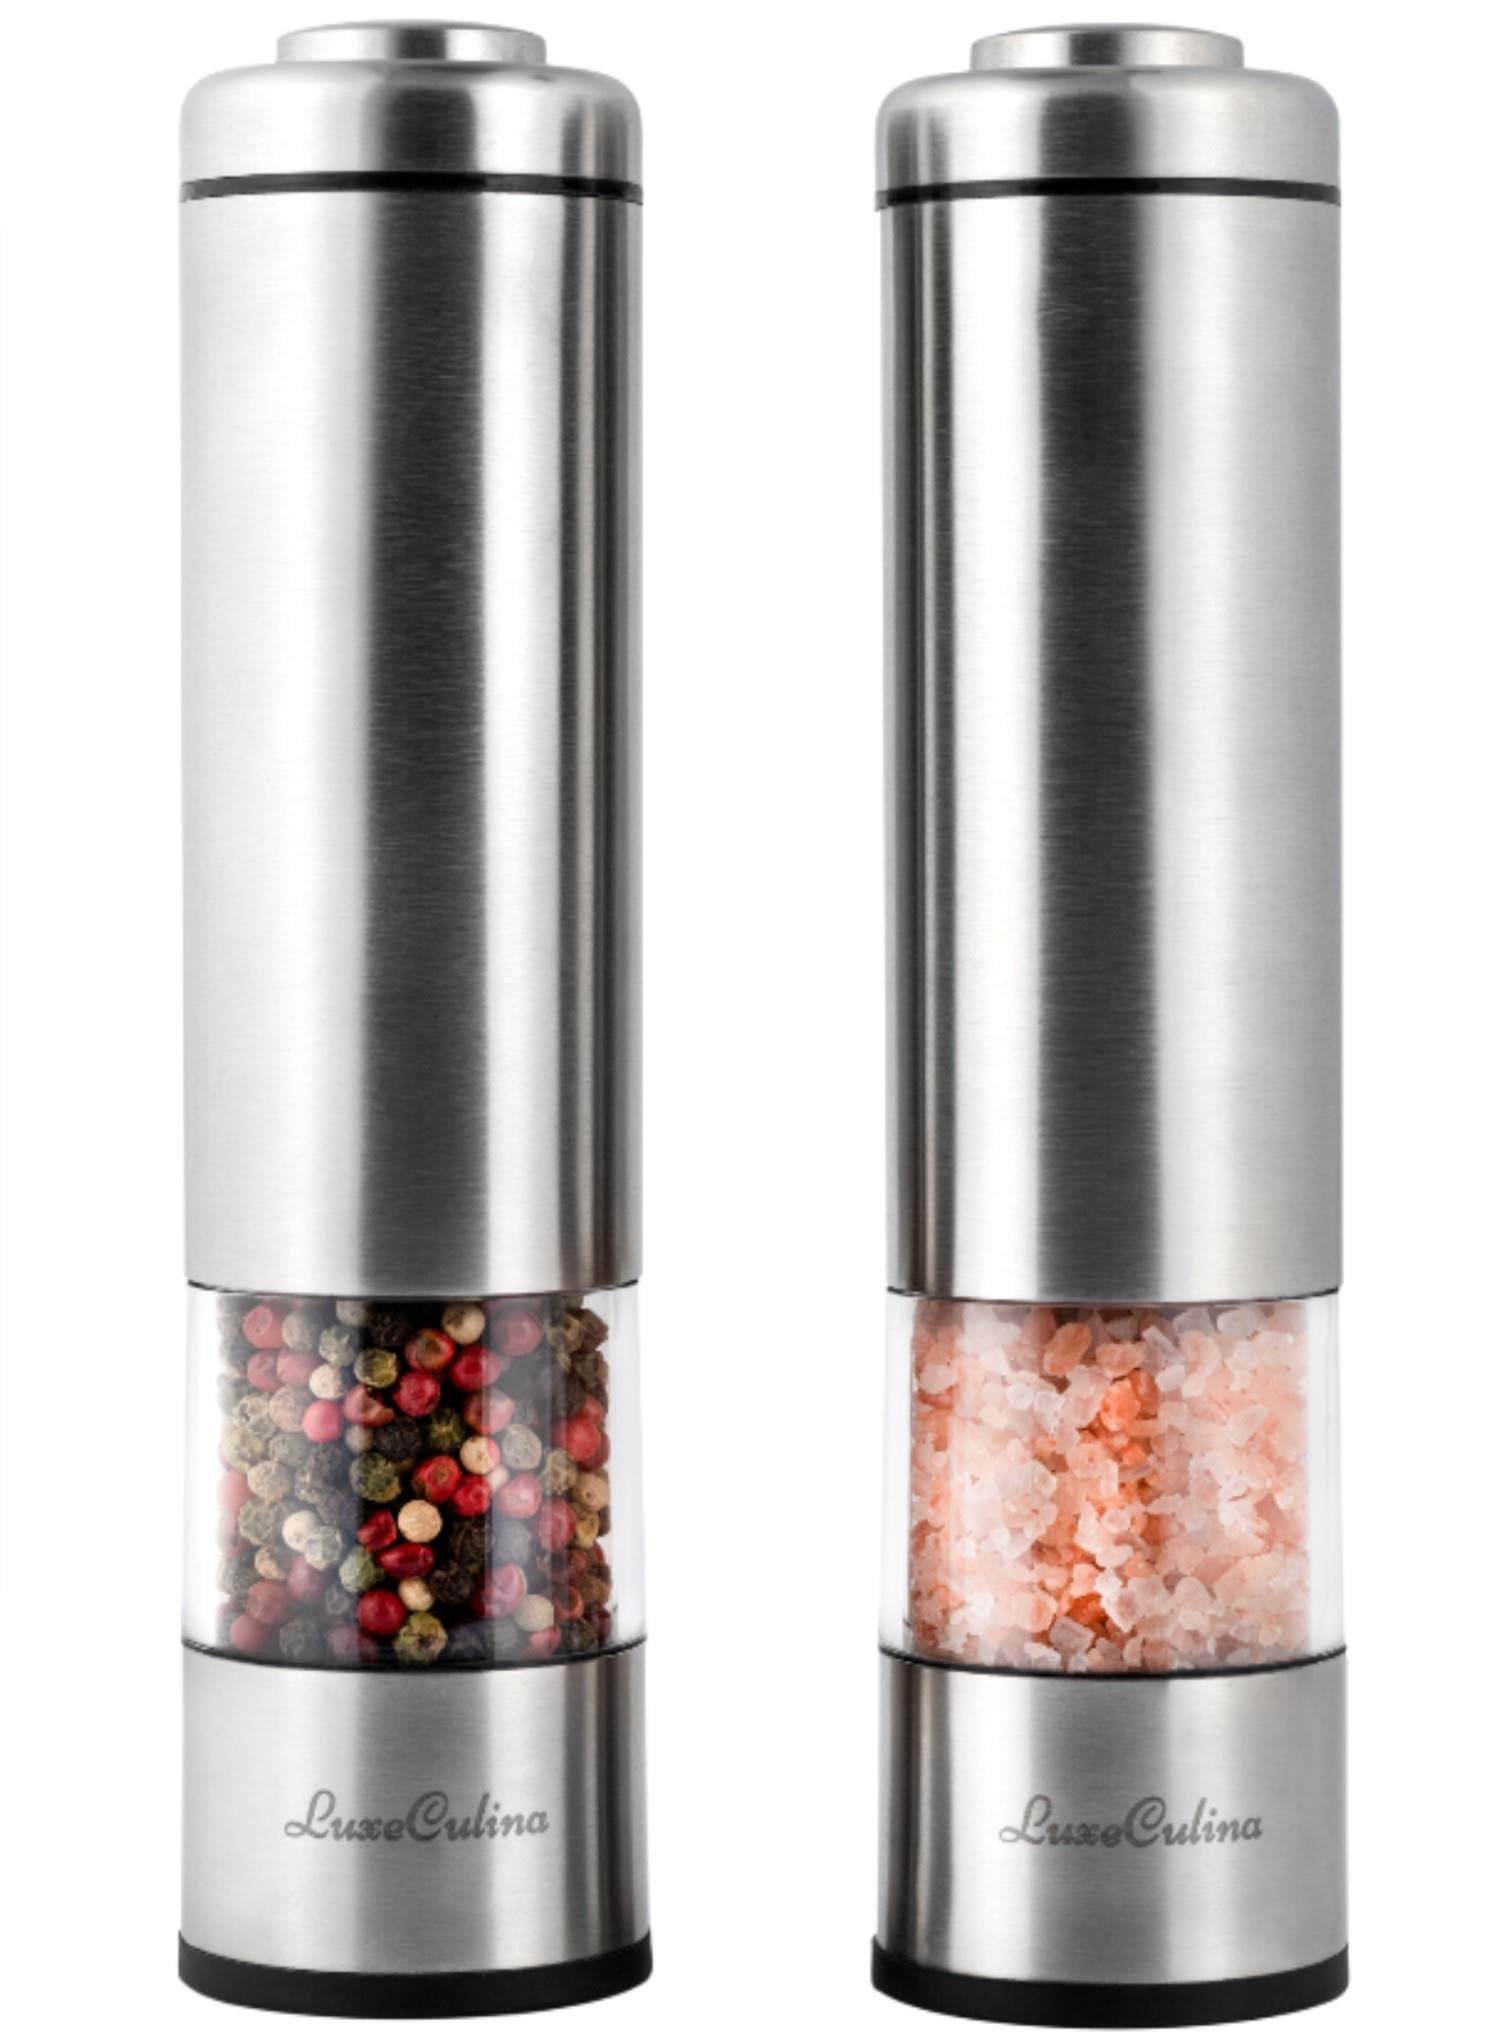 Electric Pepper Grinder or Salt Grinder Mill Set (Pack of 2) by LuxeCulina | Battery Operated with Light | Automatic Shakers with Adjustable Coarseness by LuxeCulina